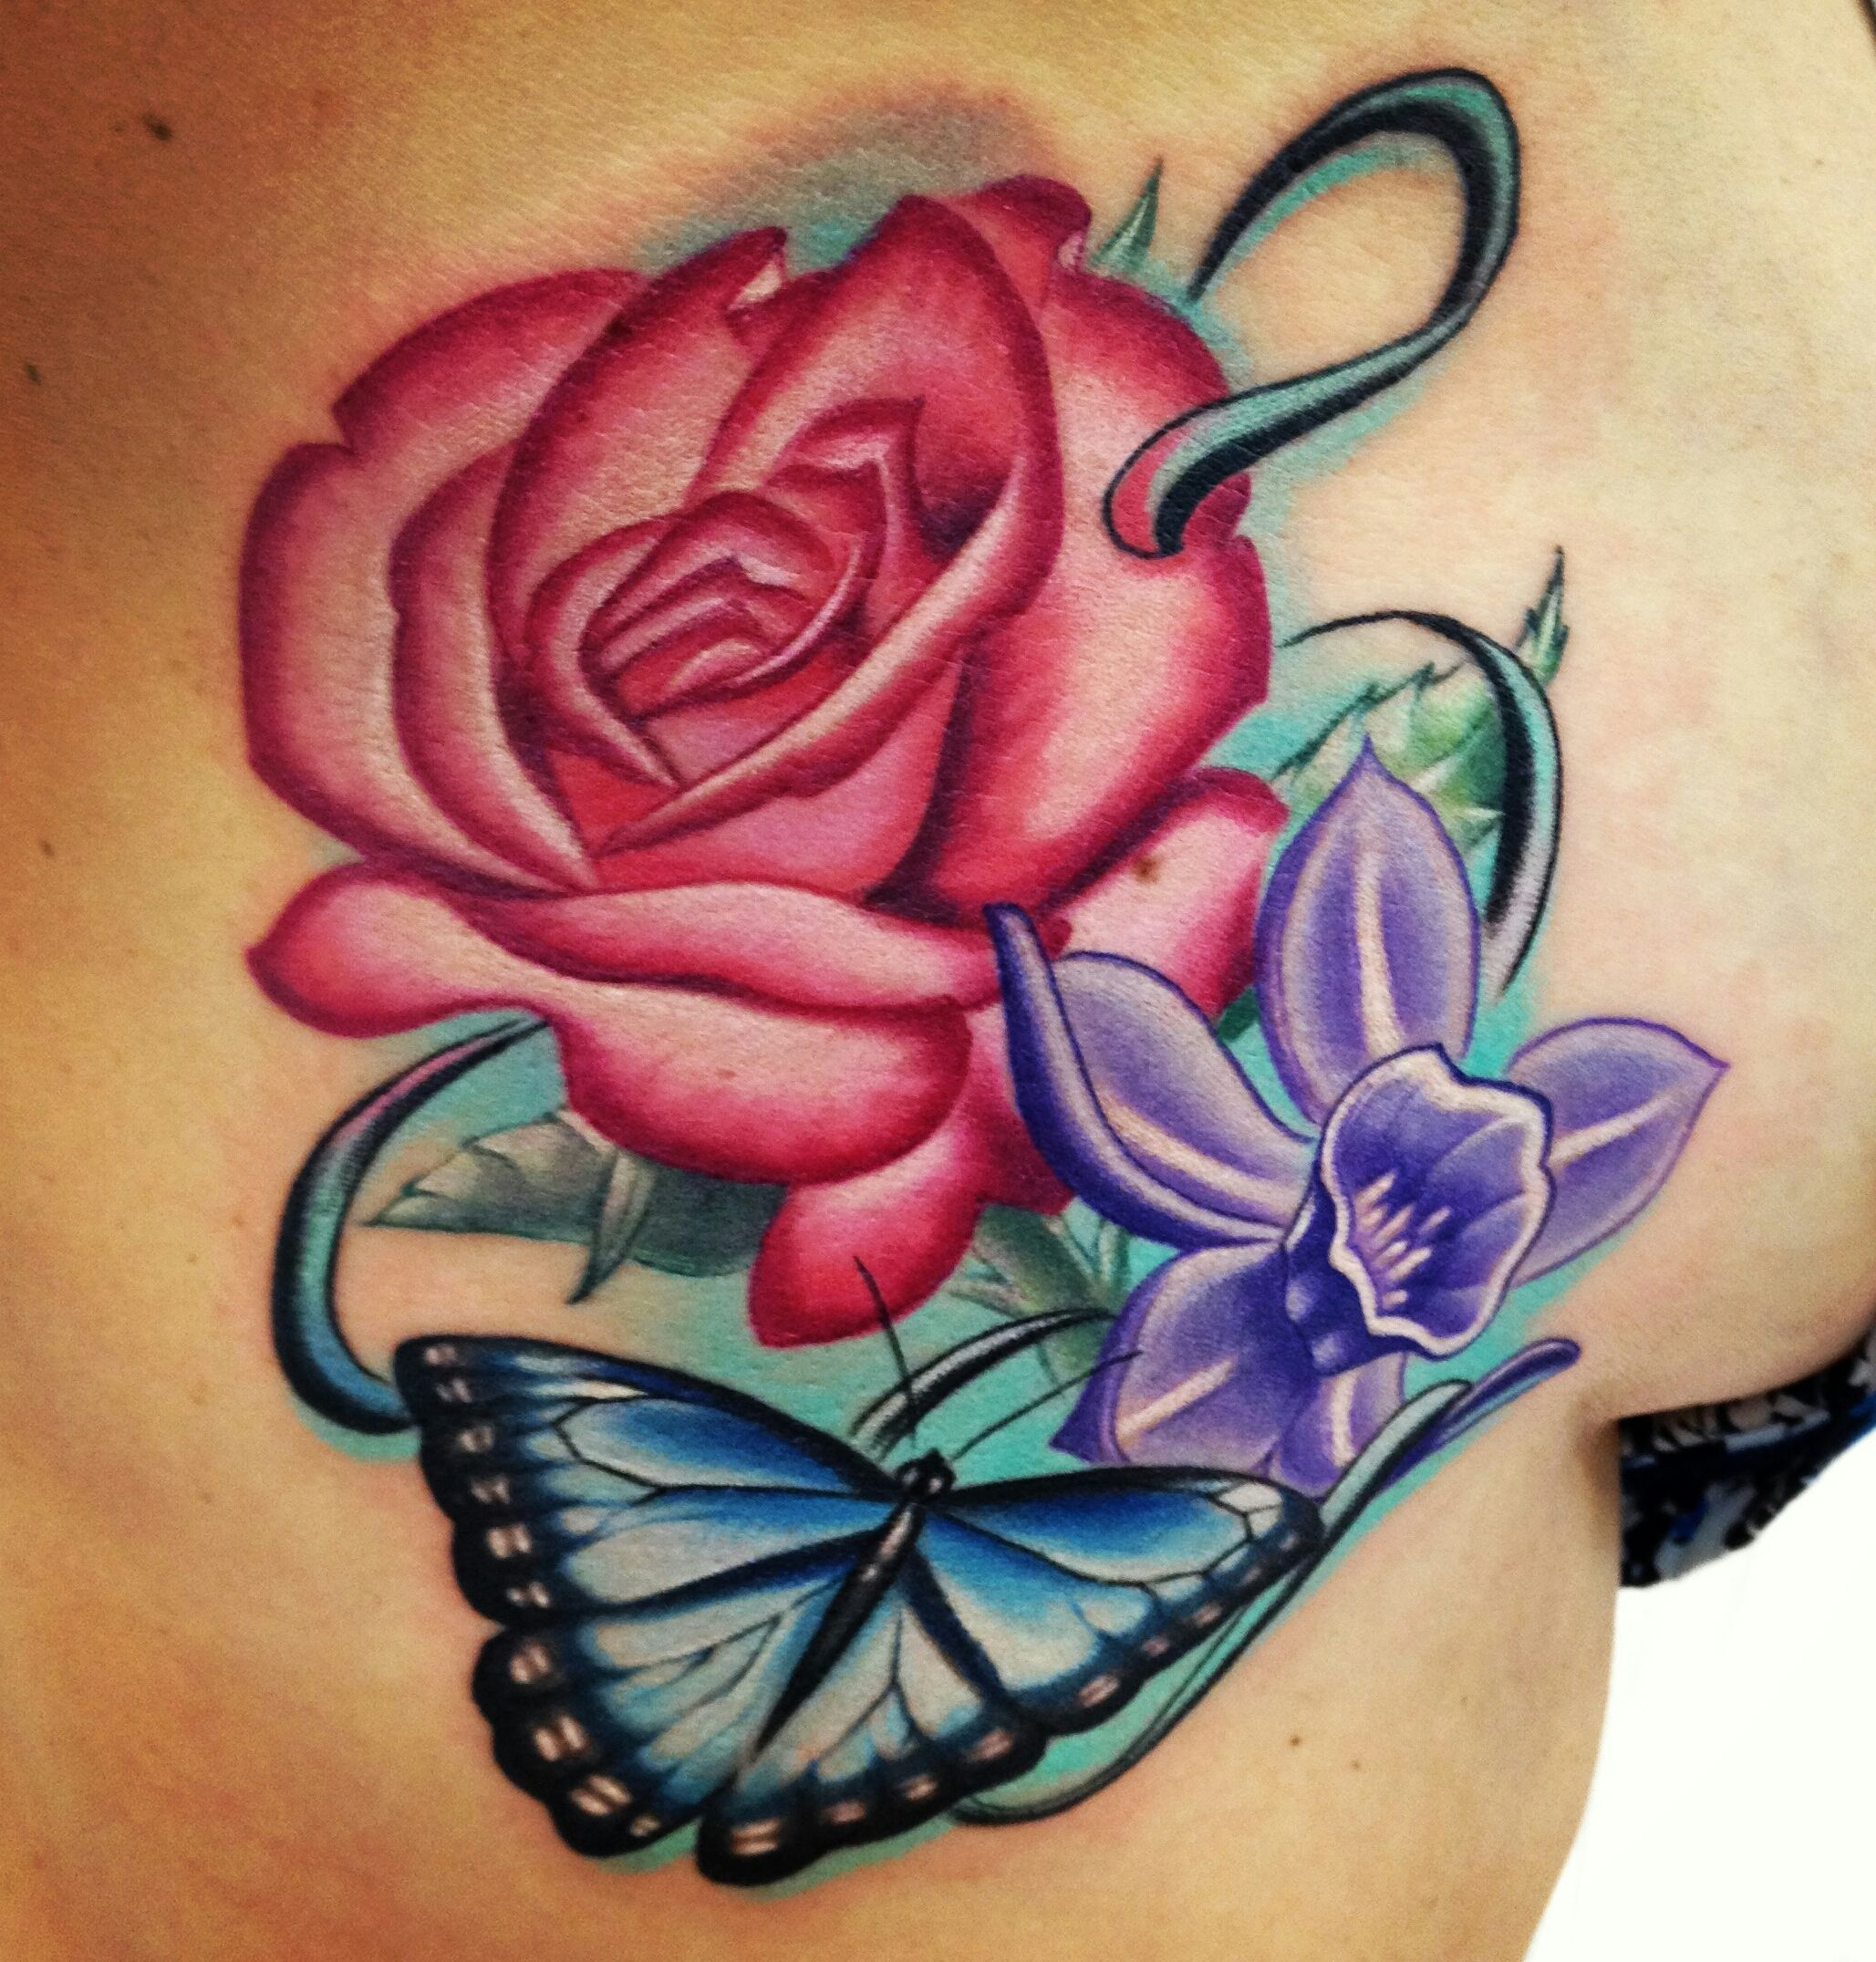 birth flower tattoo on ribs the rose for june and daffodil for march this will 39 grow 39 as i. Black Bedroom Furniture Sets. Home Design Ideas